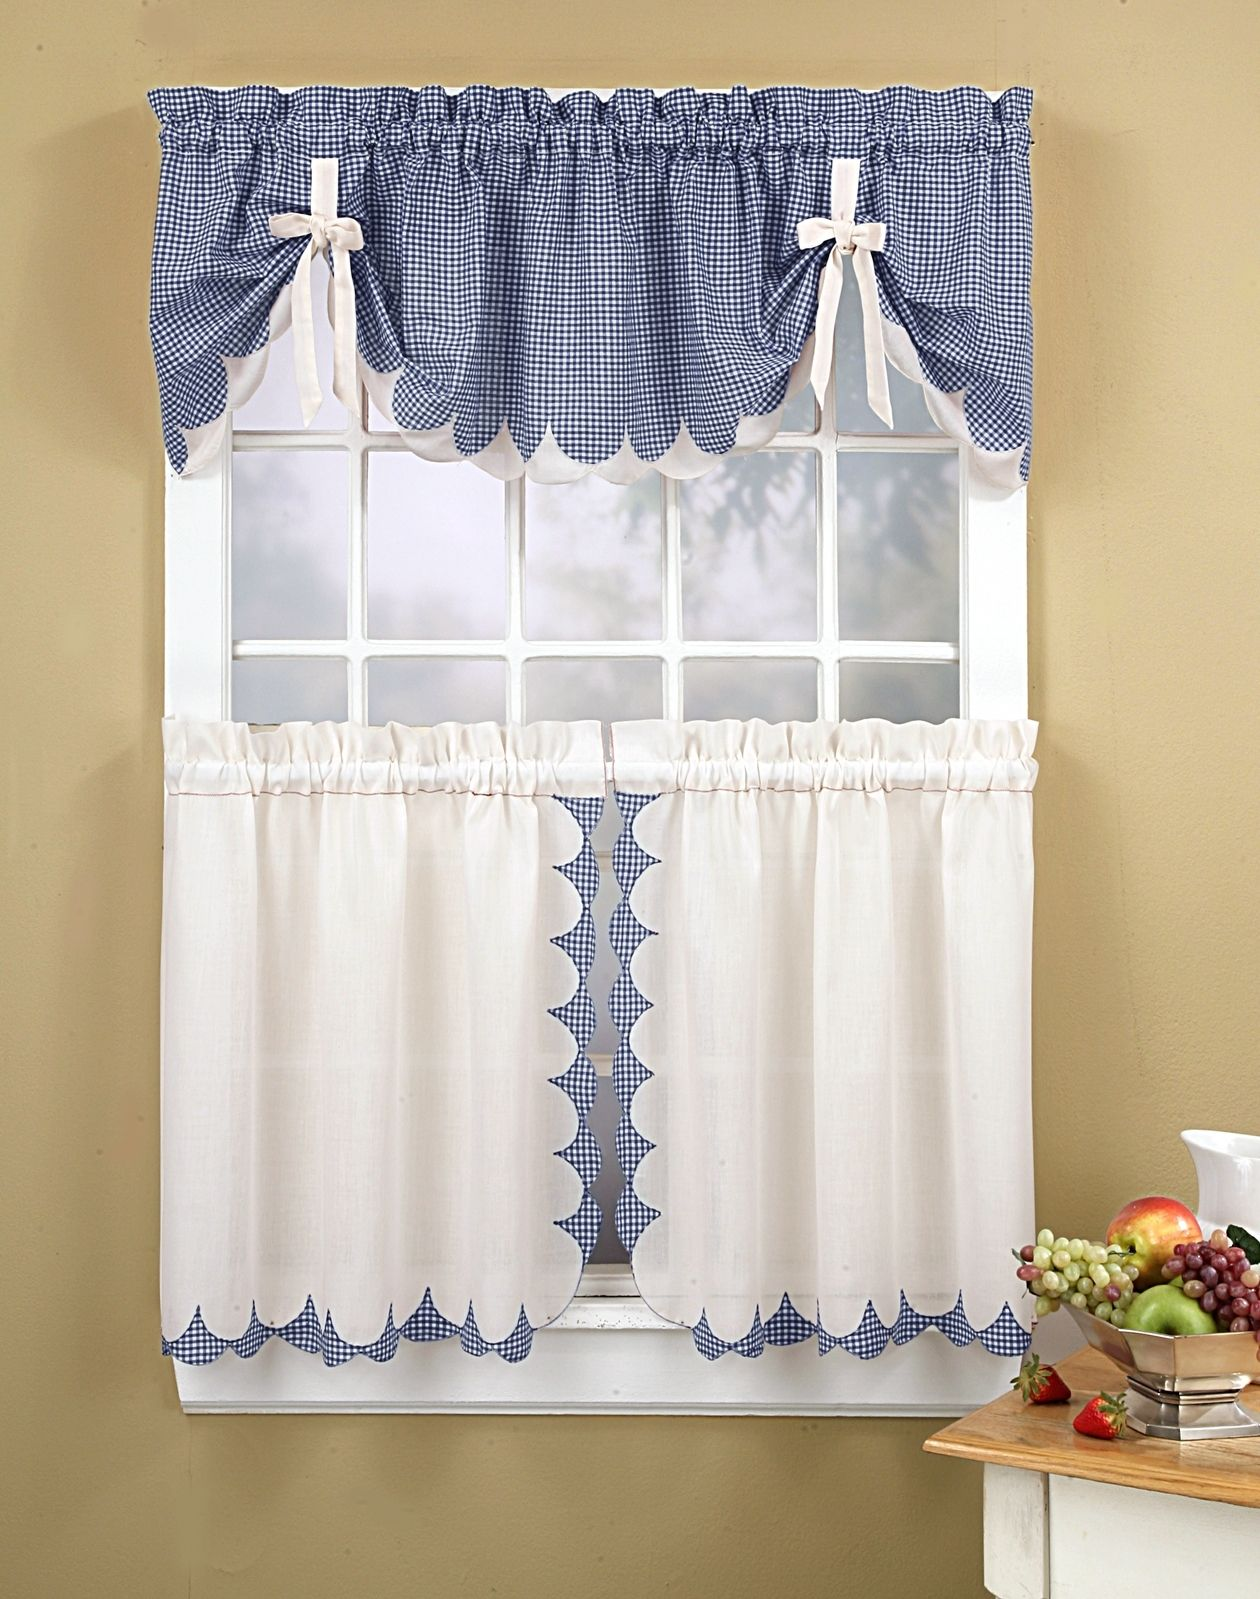 Americana country kitchen curtains